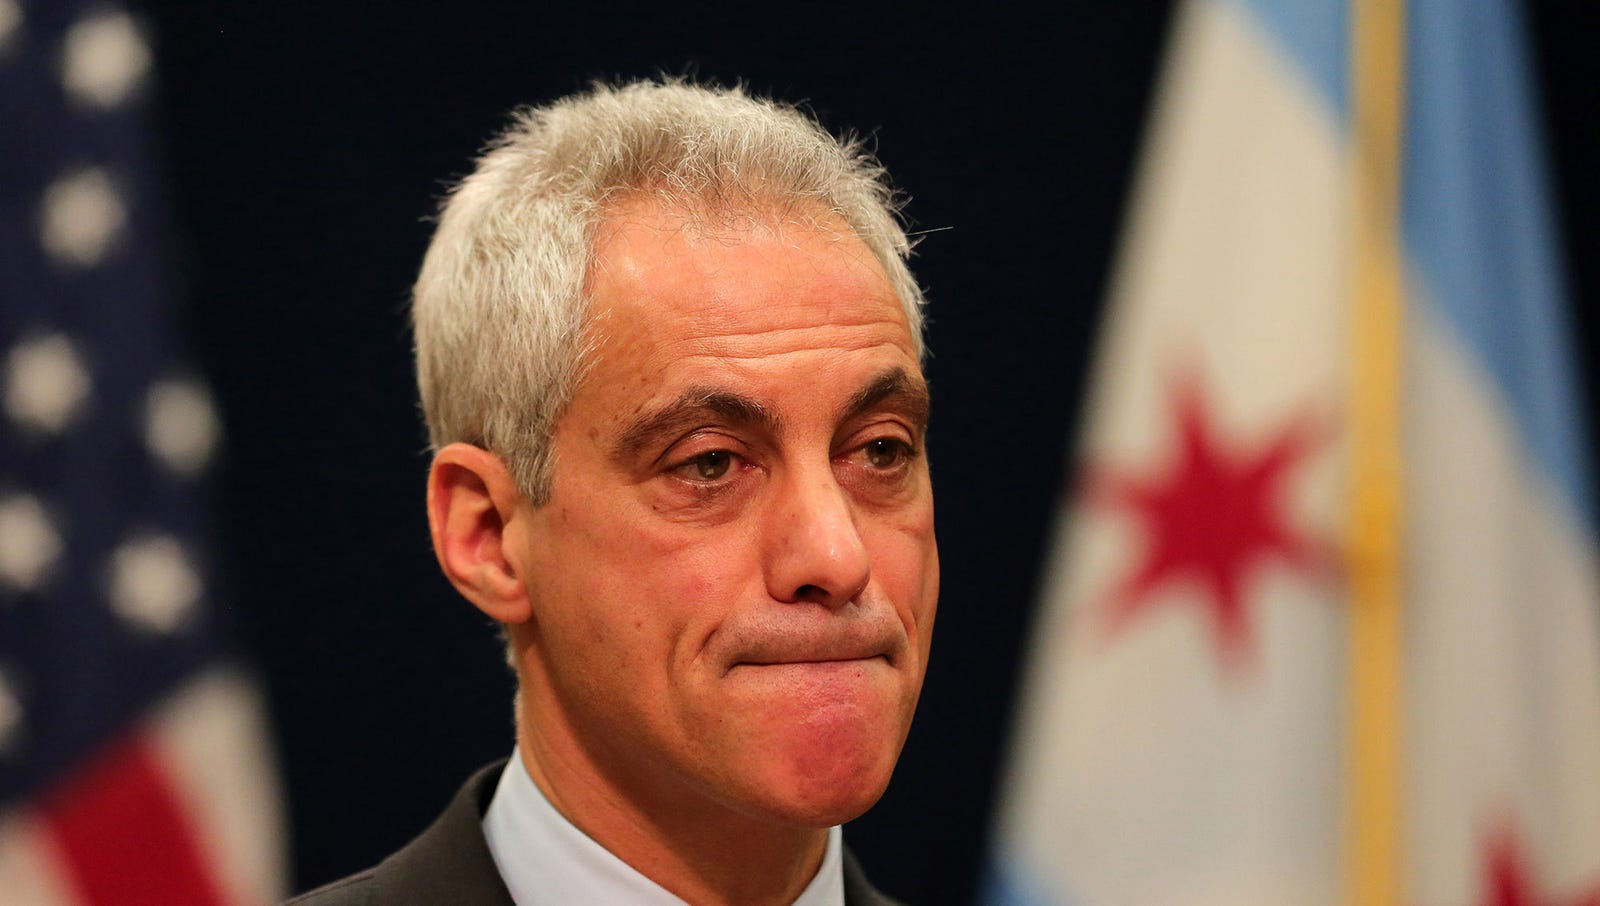 Rahm Emanuel Concerned Gun Violence Could Spread To Parts Of City He Gives Shit About